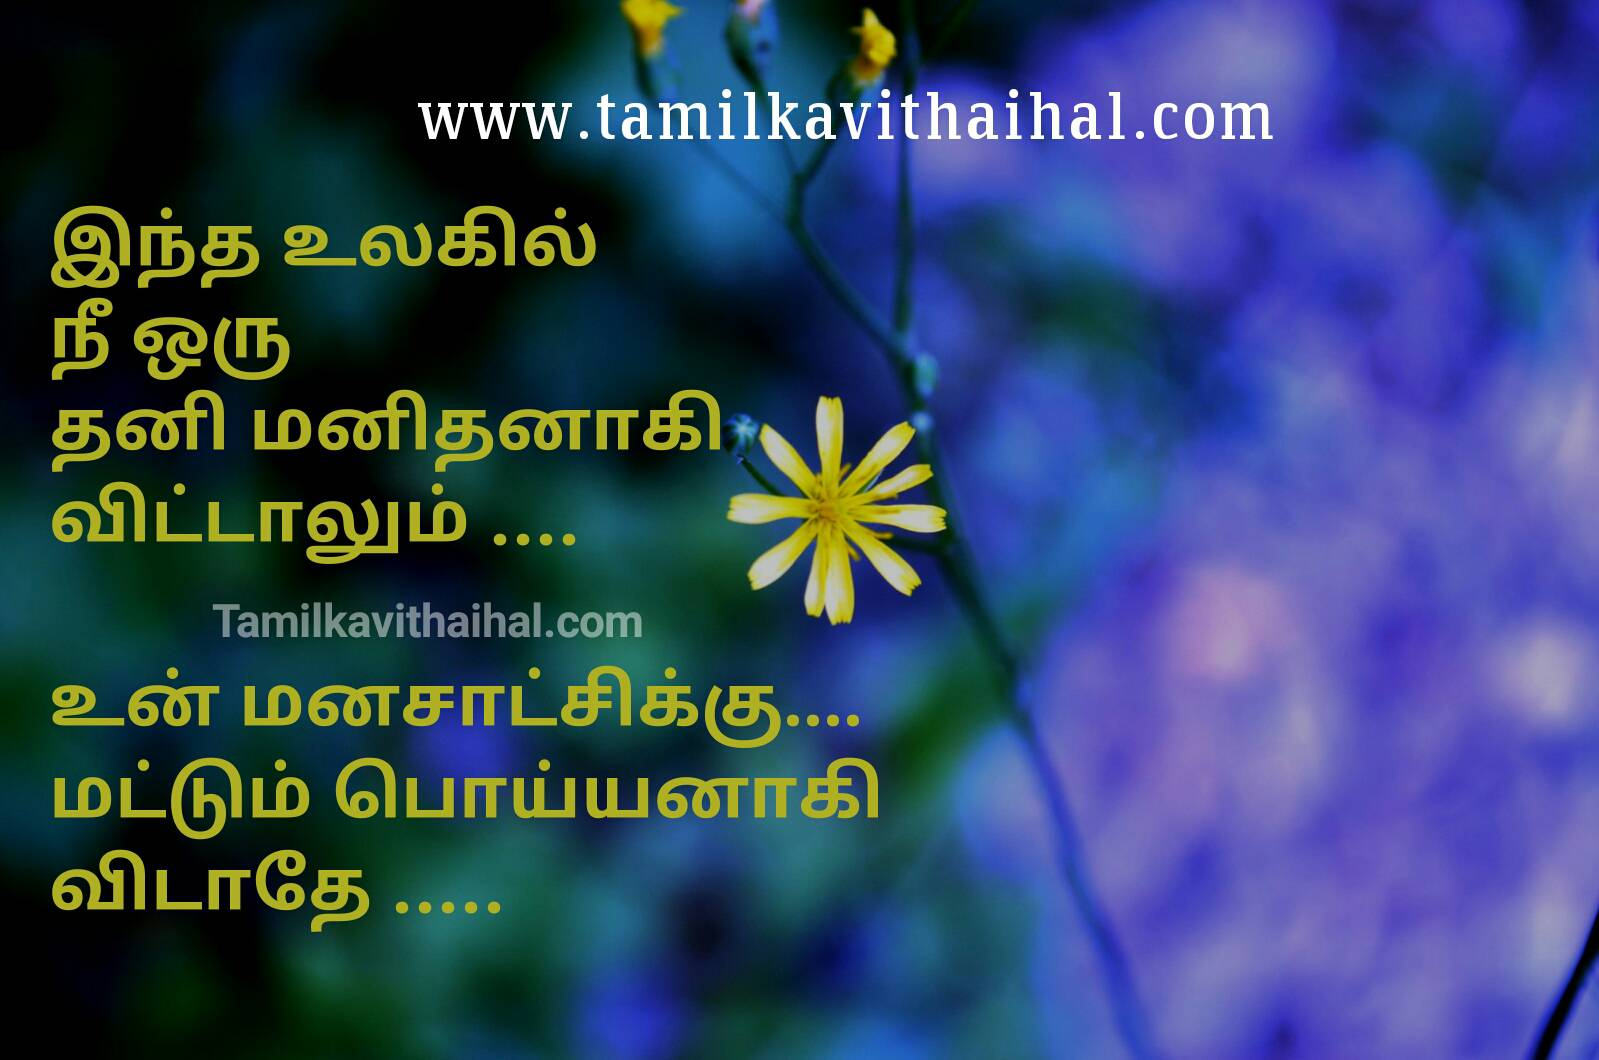 Best manam feeling world thani manithan lonely emotional memory poiyan thathuvam kavithai facebook status